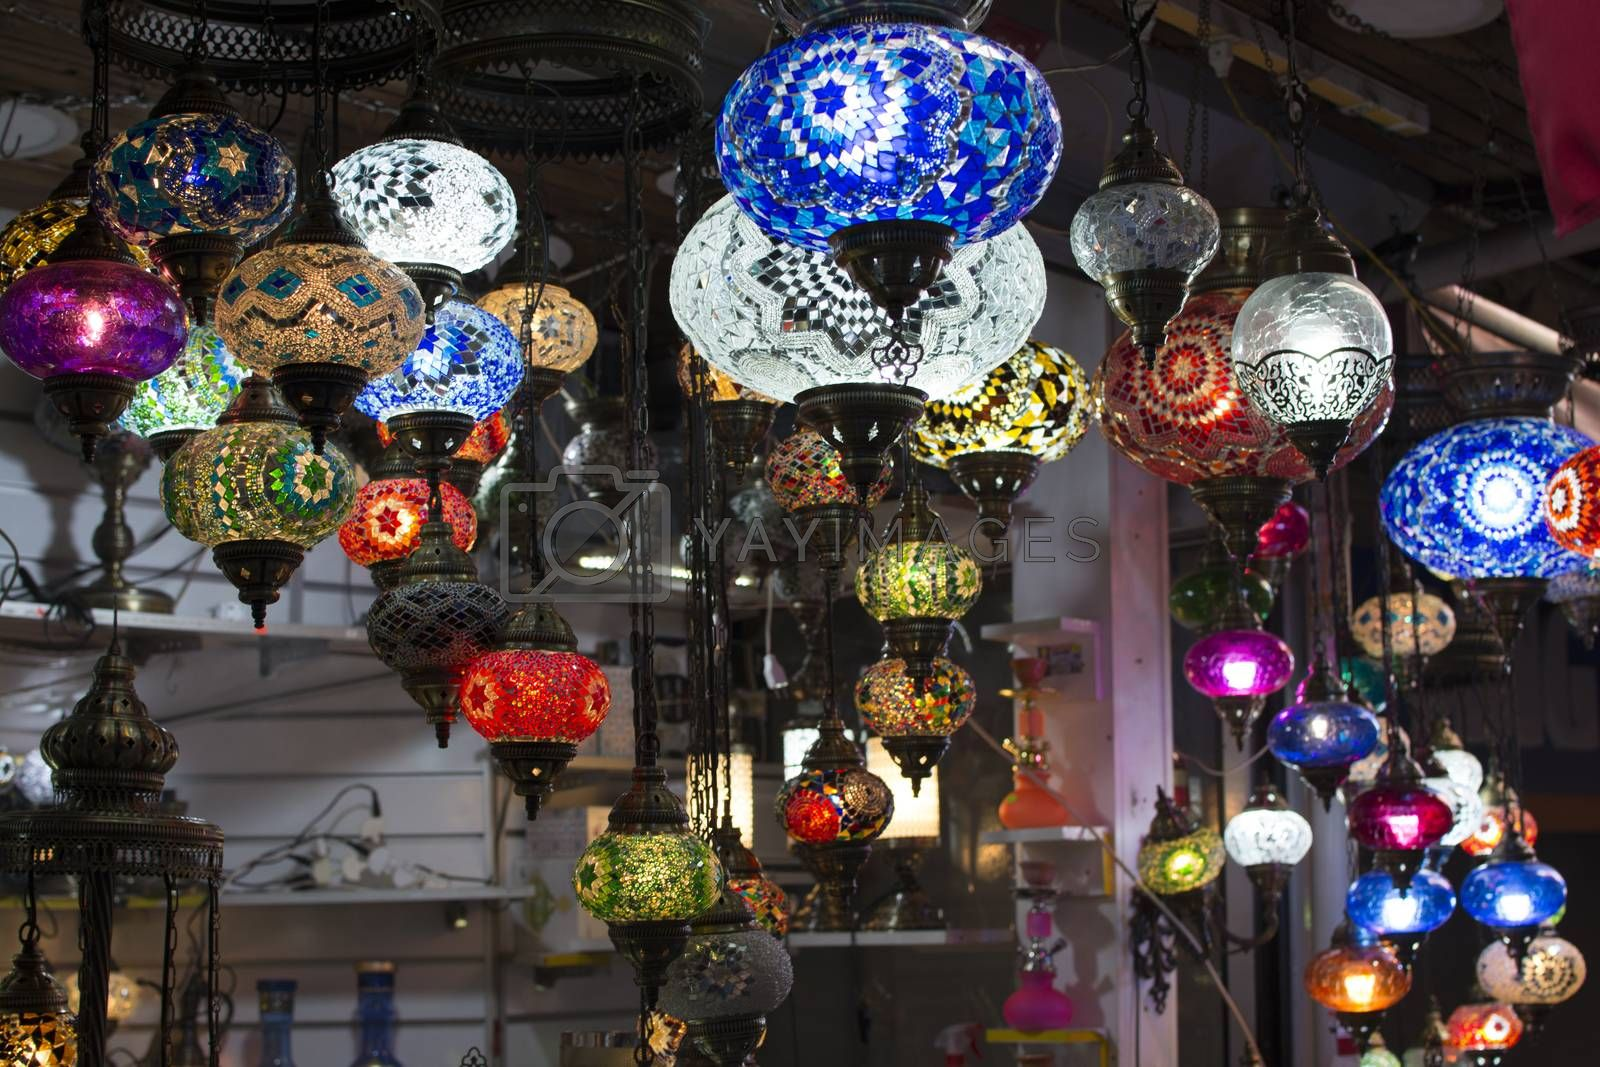 Ottoman chandeliers by Nursel